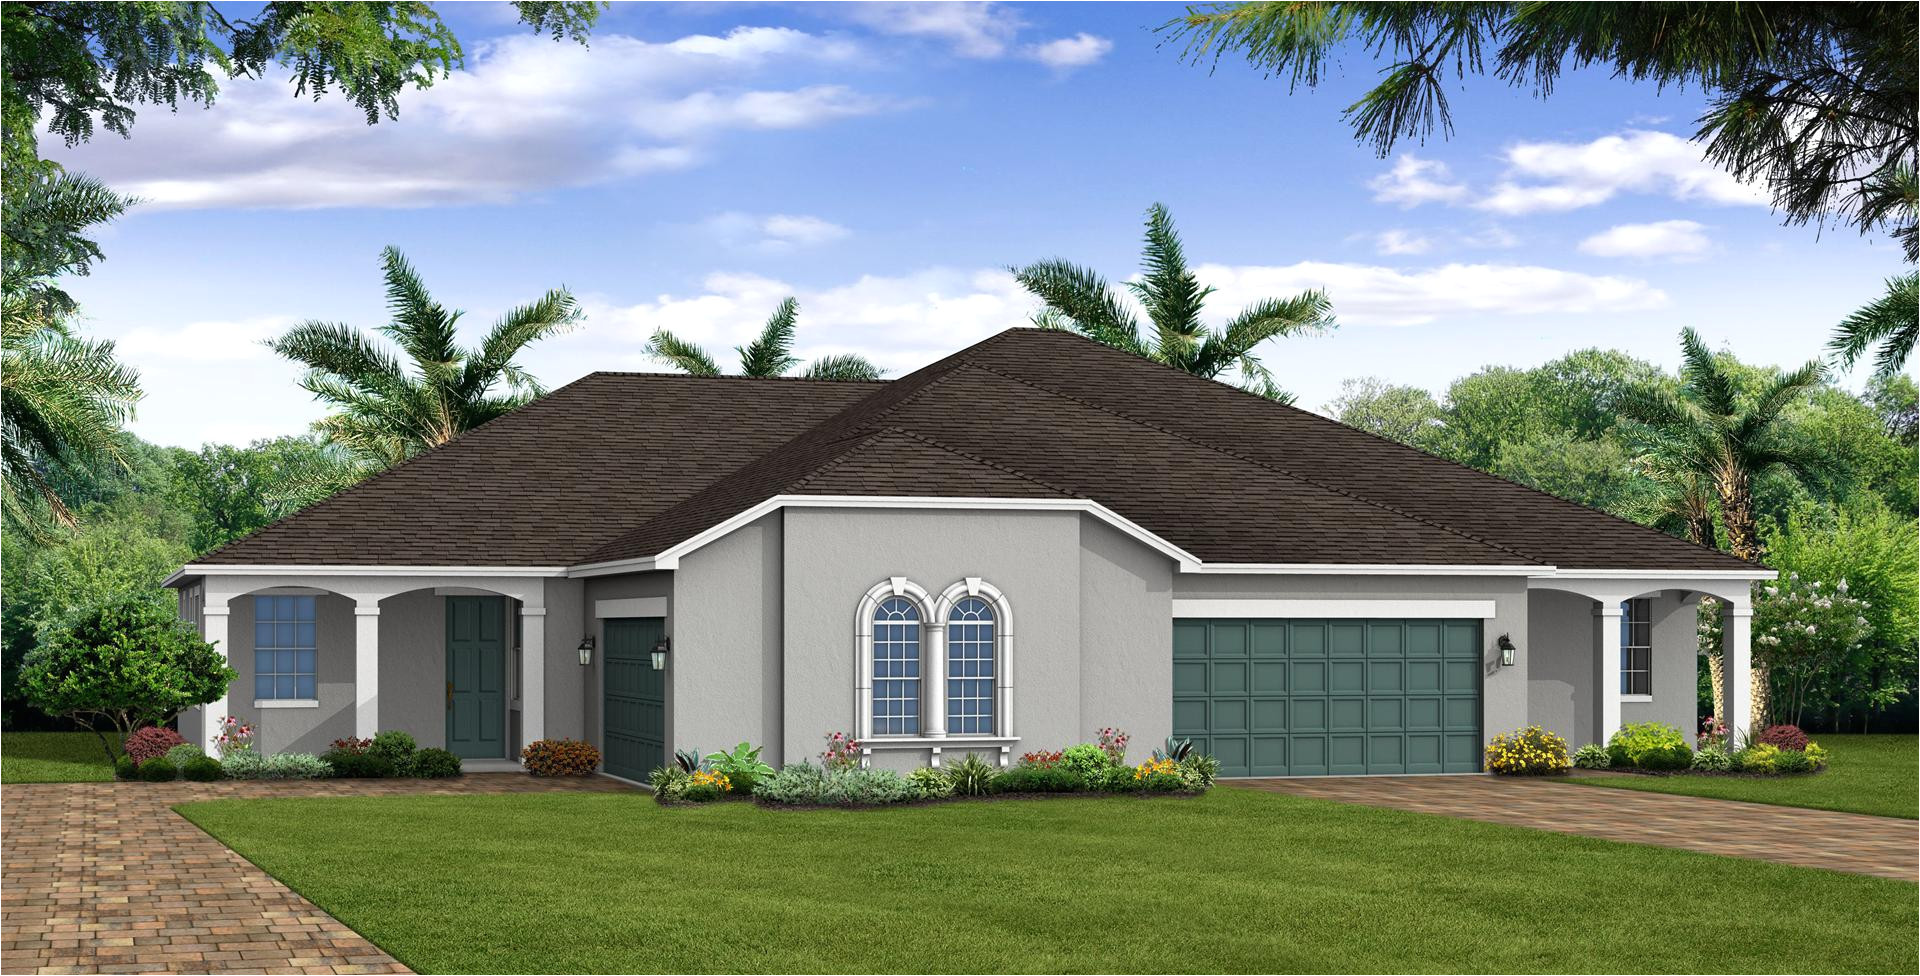 saratoga plan viera florida 32940 saratoga plan at loren cove by viera builders